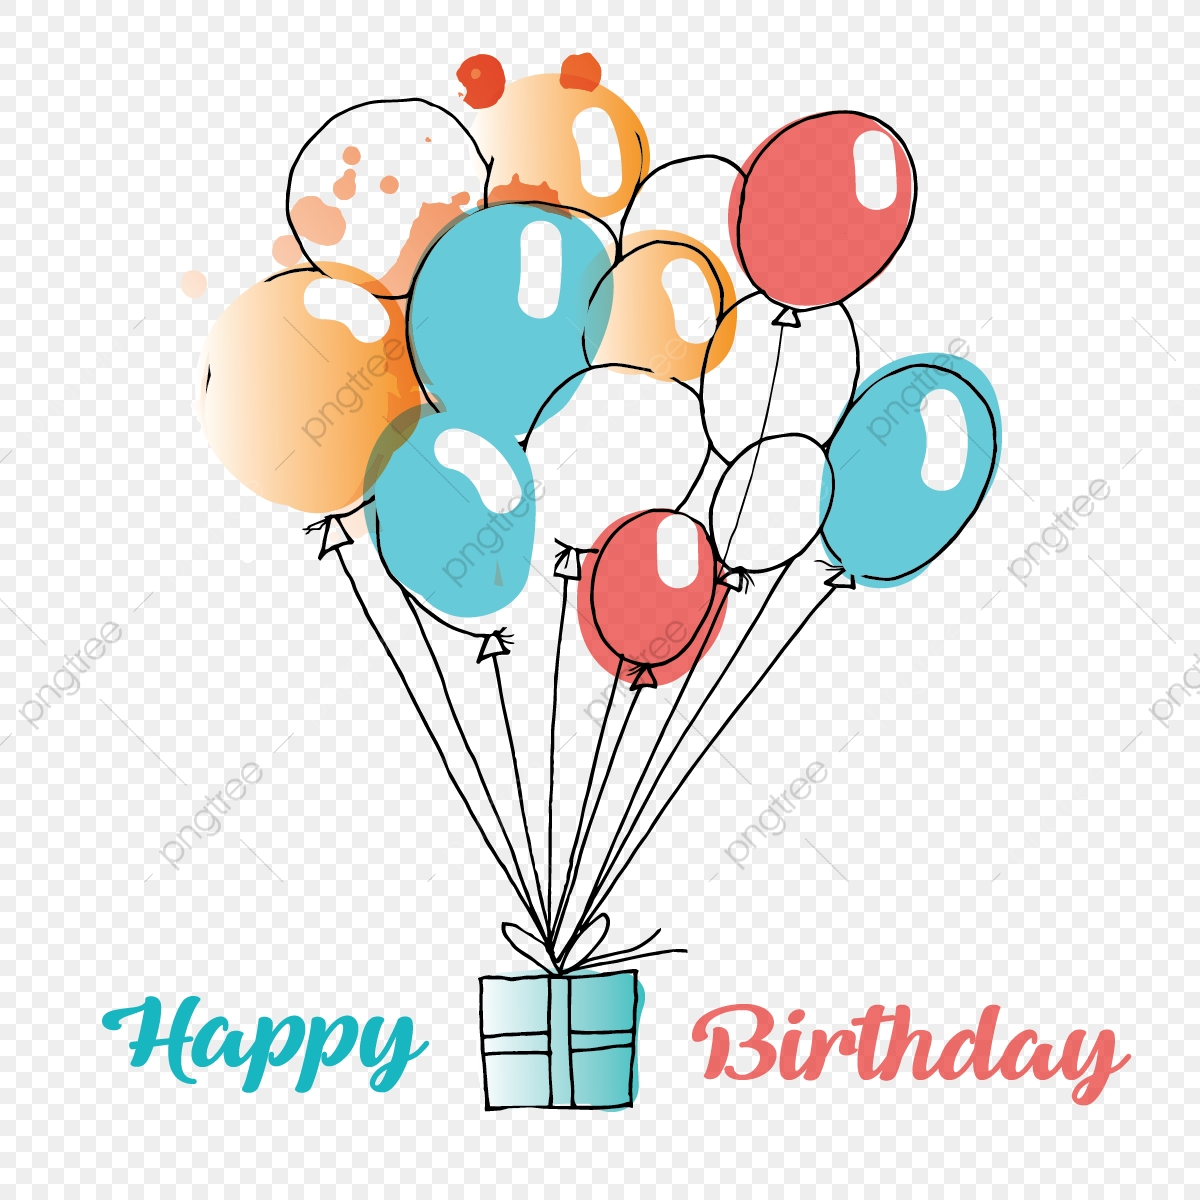 Commercial Use Resource Upgrade To Premium Plan And Get License AuthorizationUpgradeNow Colorful Birthday Gift Balloons Flying Theme